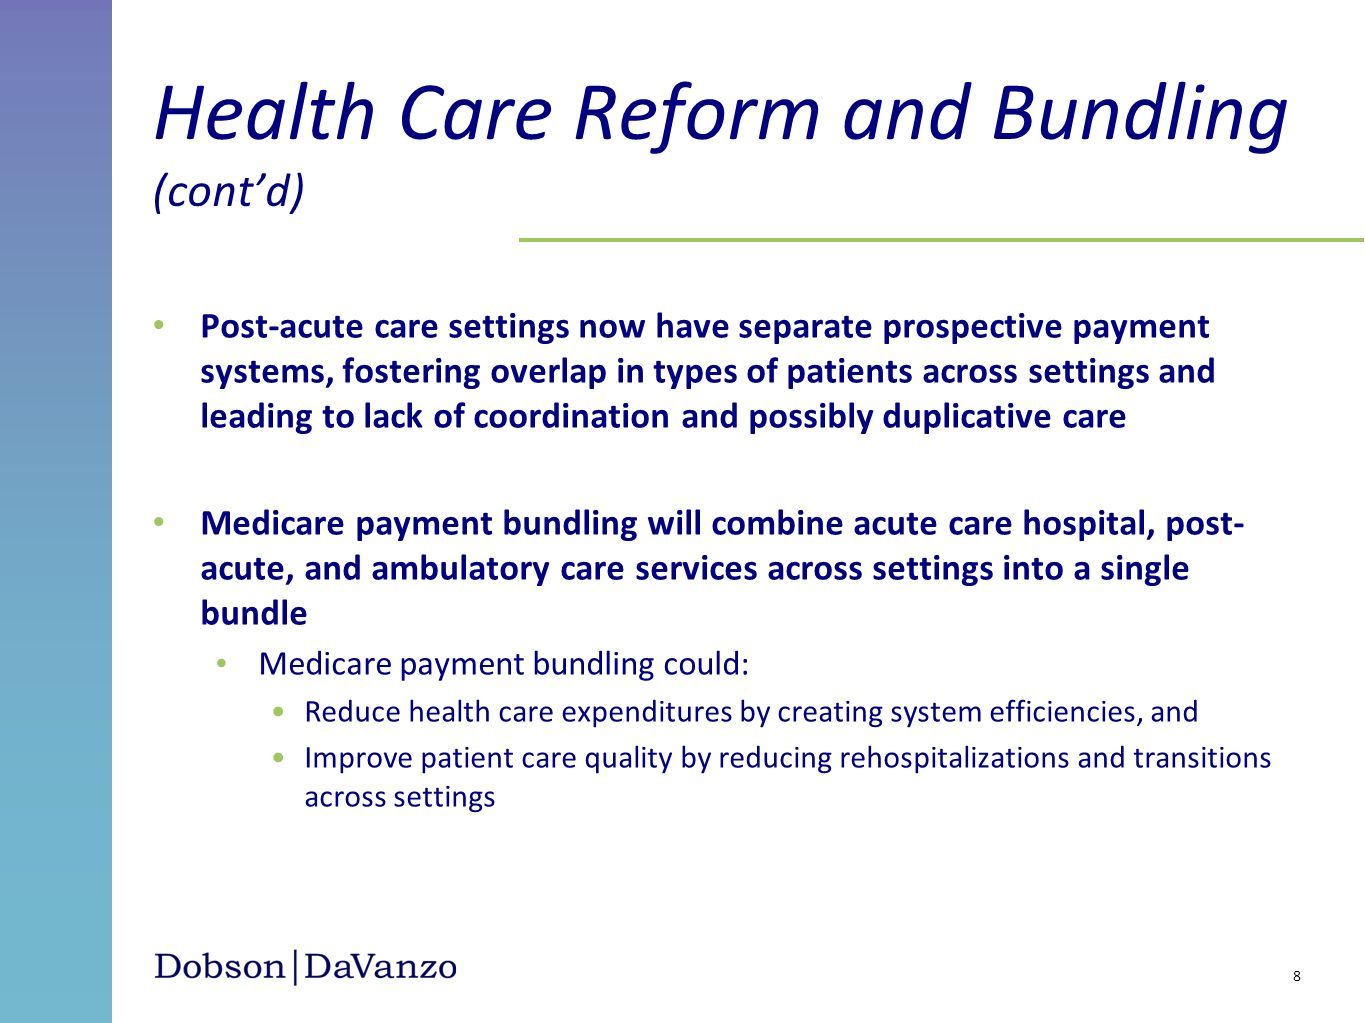 Post-acute care settings now have separate prospective payment systems, fostering overlap in types of patients across settings and leading to lack of